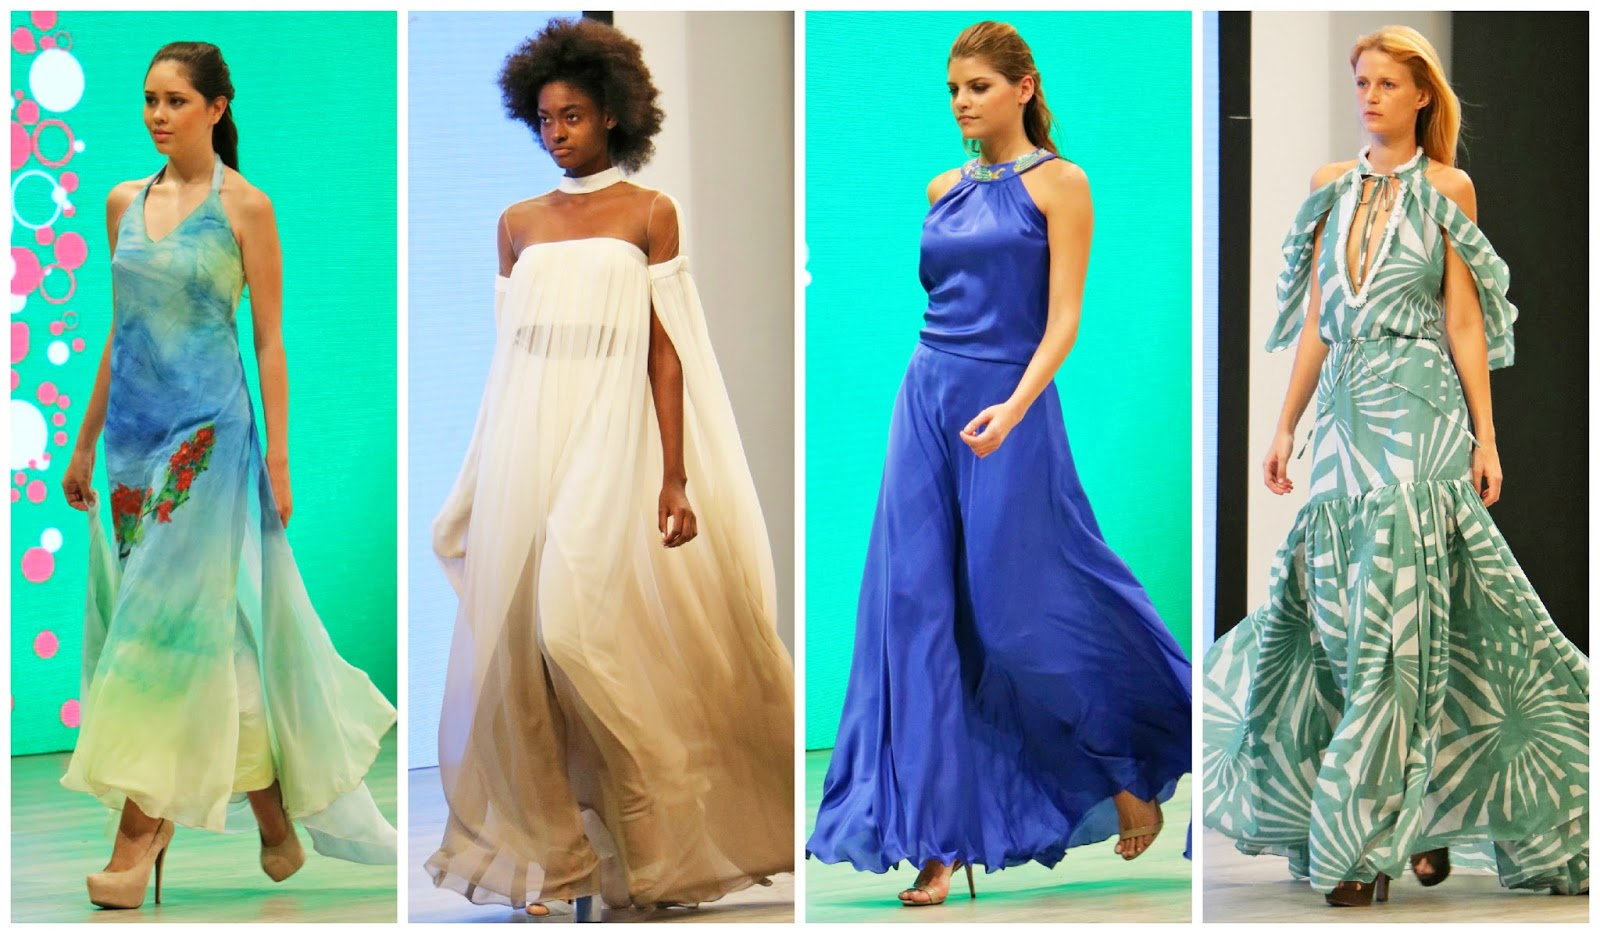 This Summer is all about light flowy fabrics when it comes to dresses. Click through for more Spring/Summer trends!